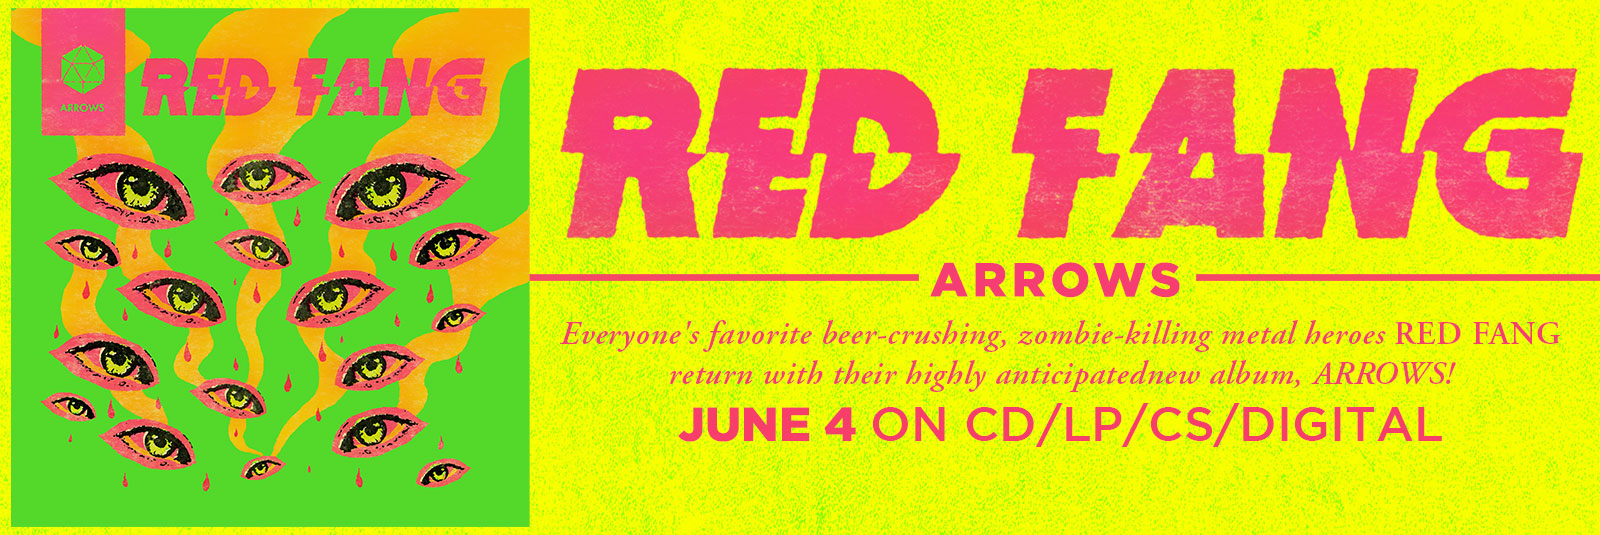 red-fang-arrows-